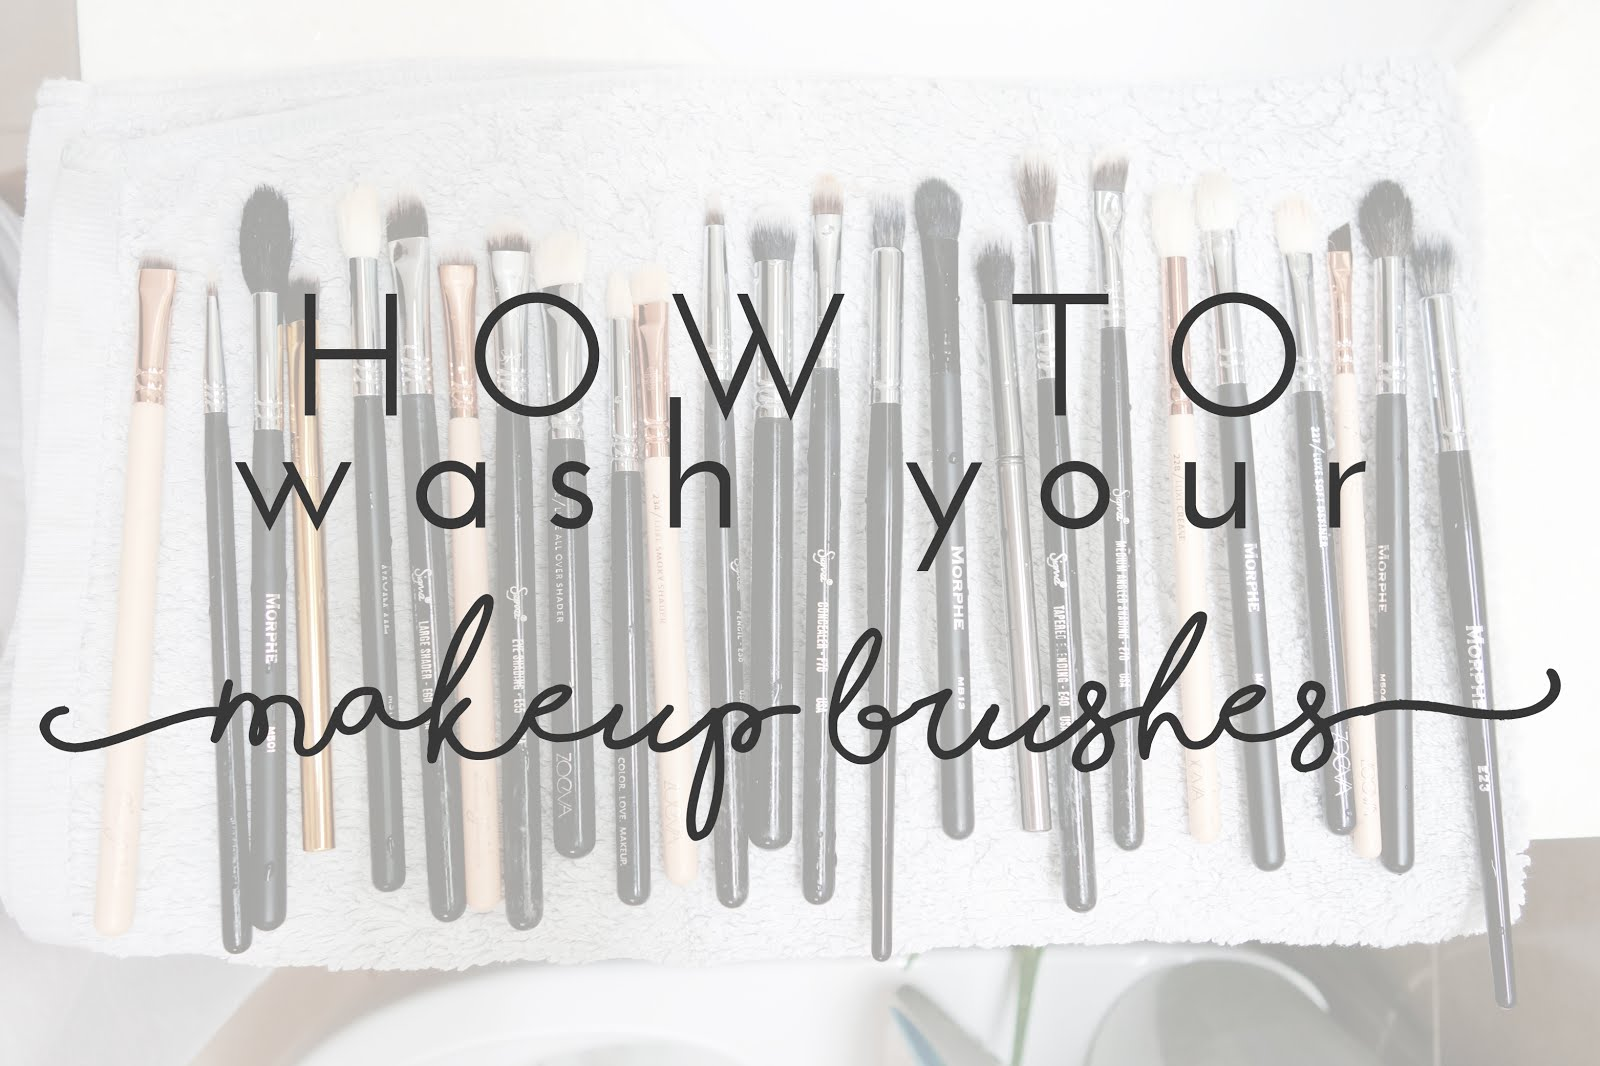 Tutorial, Demo on How To Wash / Clean Make Up Brushes